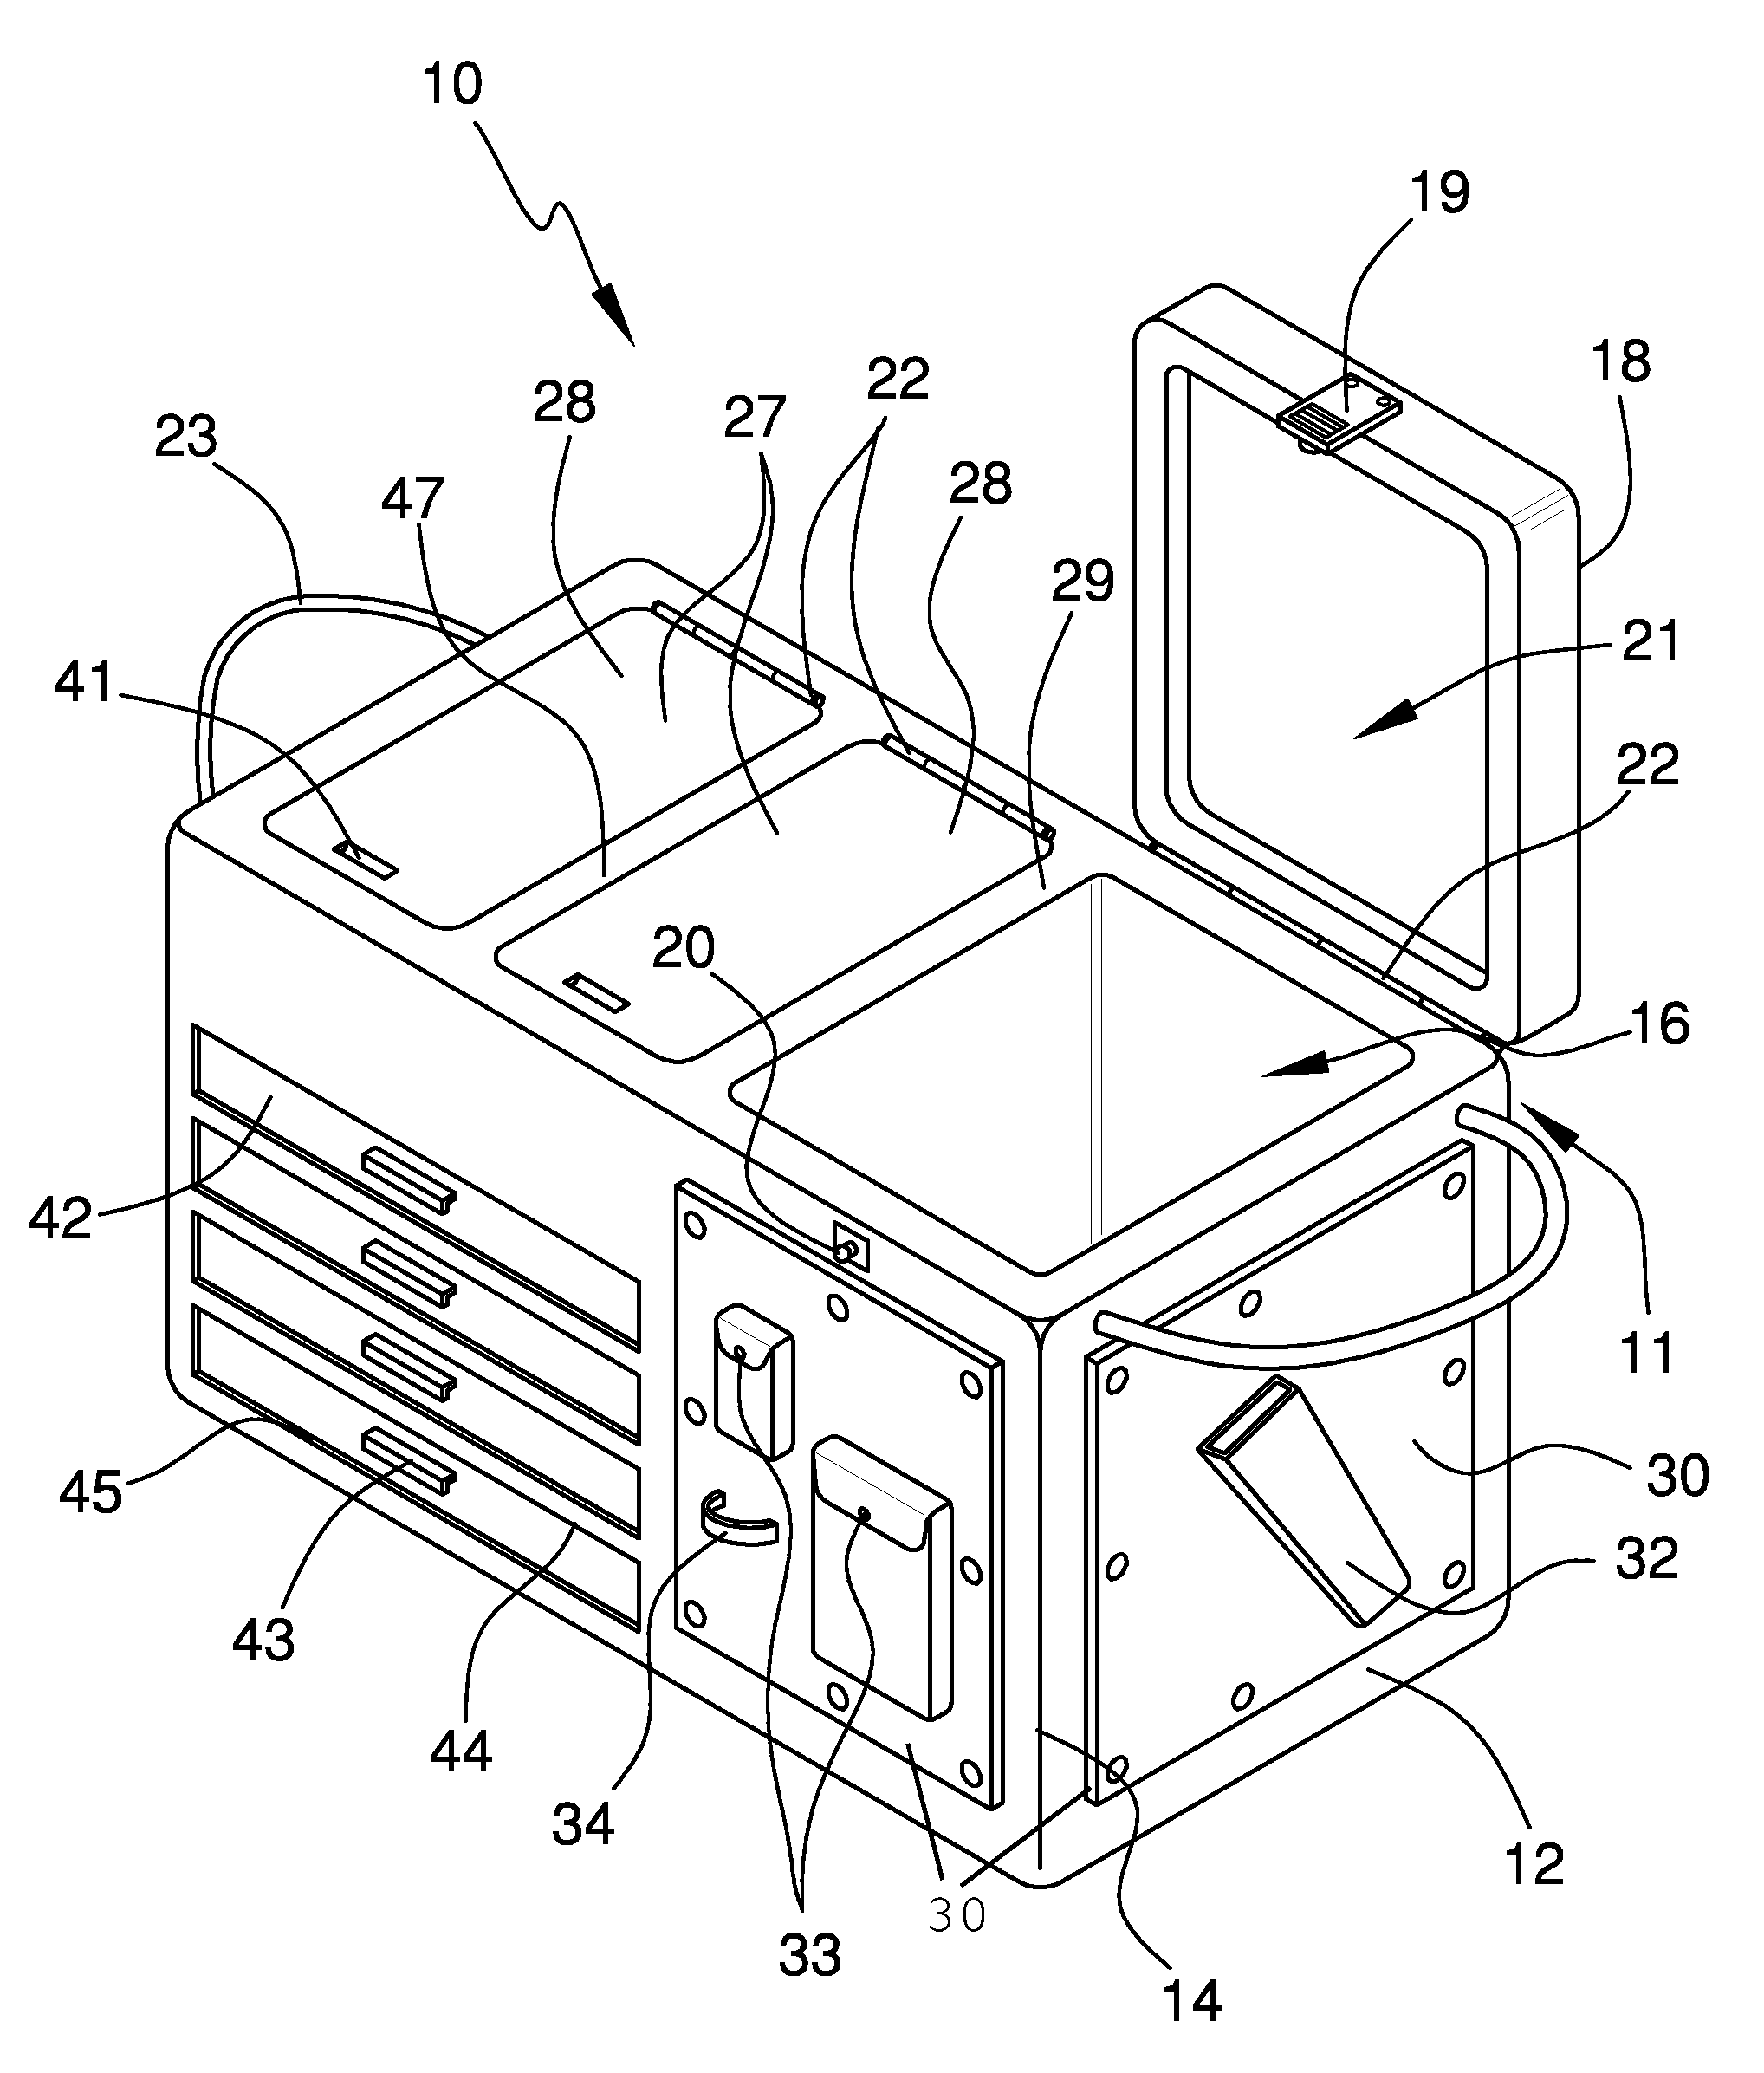 ... US07415794 20080826 D00000 patent us7415794 portable cooler and tackle  box google patents 2001 hyundai xg300 fuse